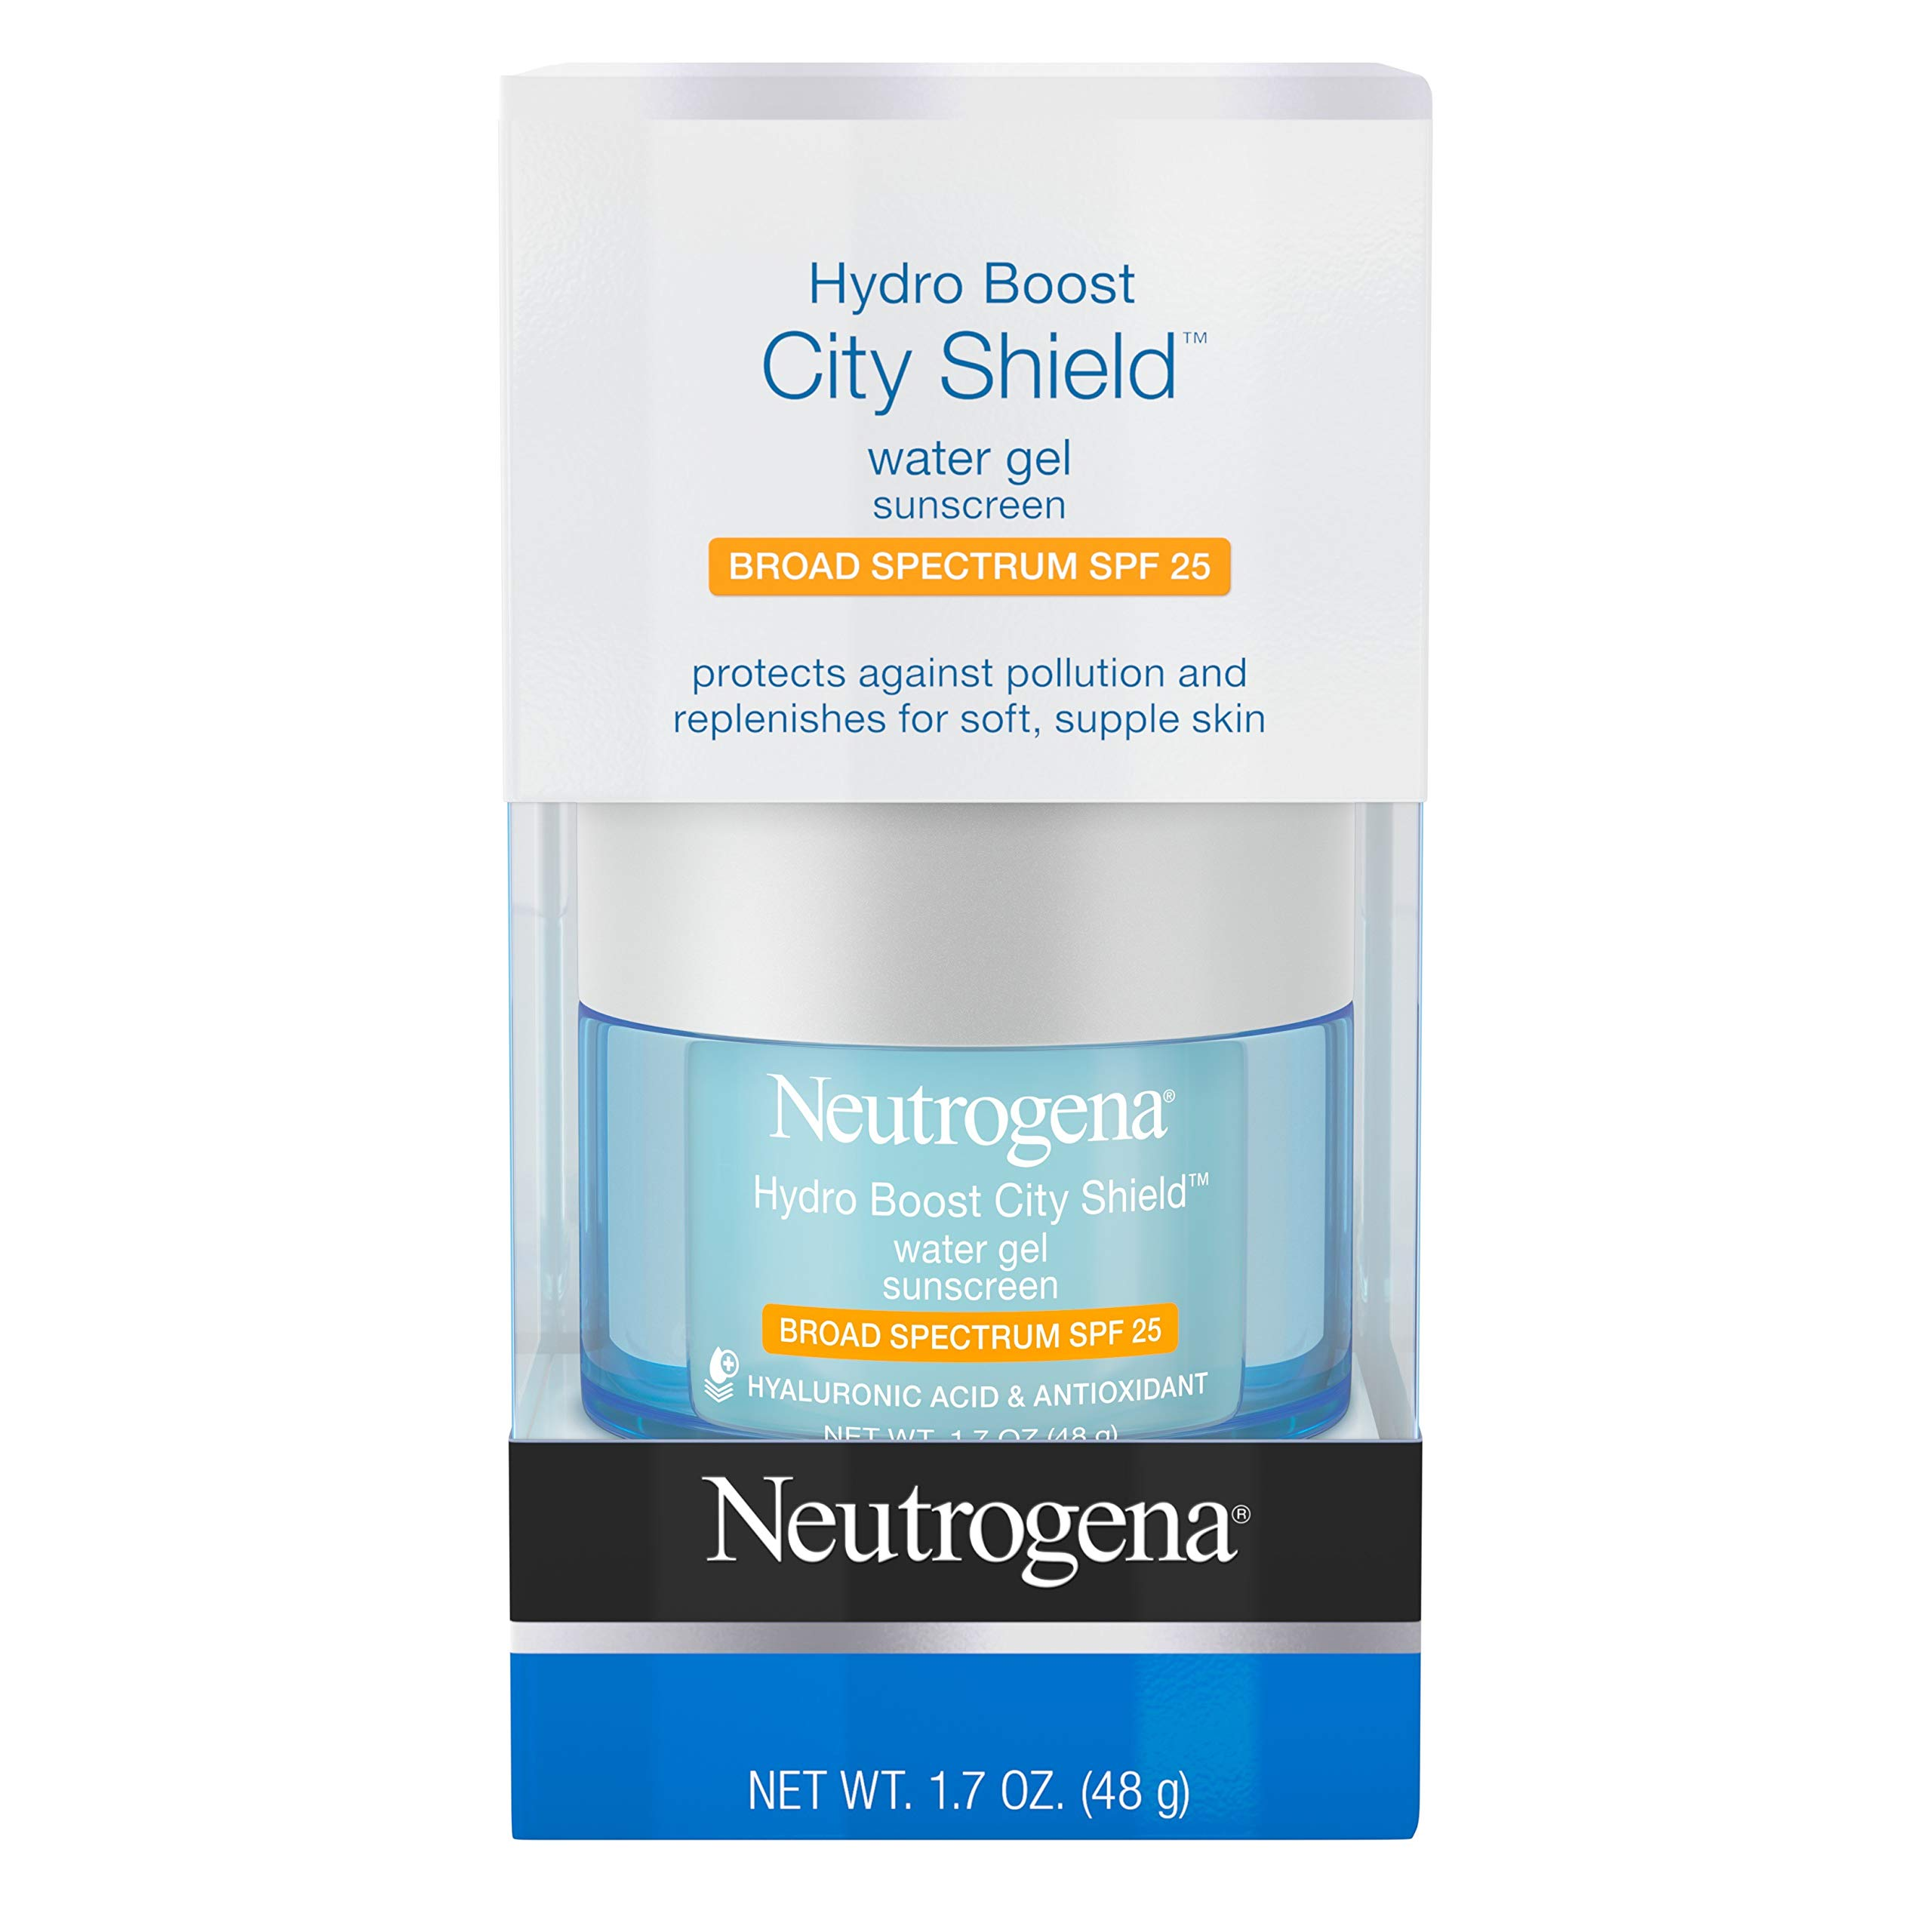 Neutrogena Hydro Boost City Shield Water Gel with Hydrating Hyaluronic Acid, Antioxidants, and Broad Spectrum SPF 25 Sunscreen, Oil-Free, Alcohol-Free, Non-Comedogenic, 1.7 oz by Neutrogena